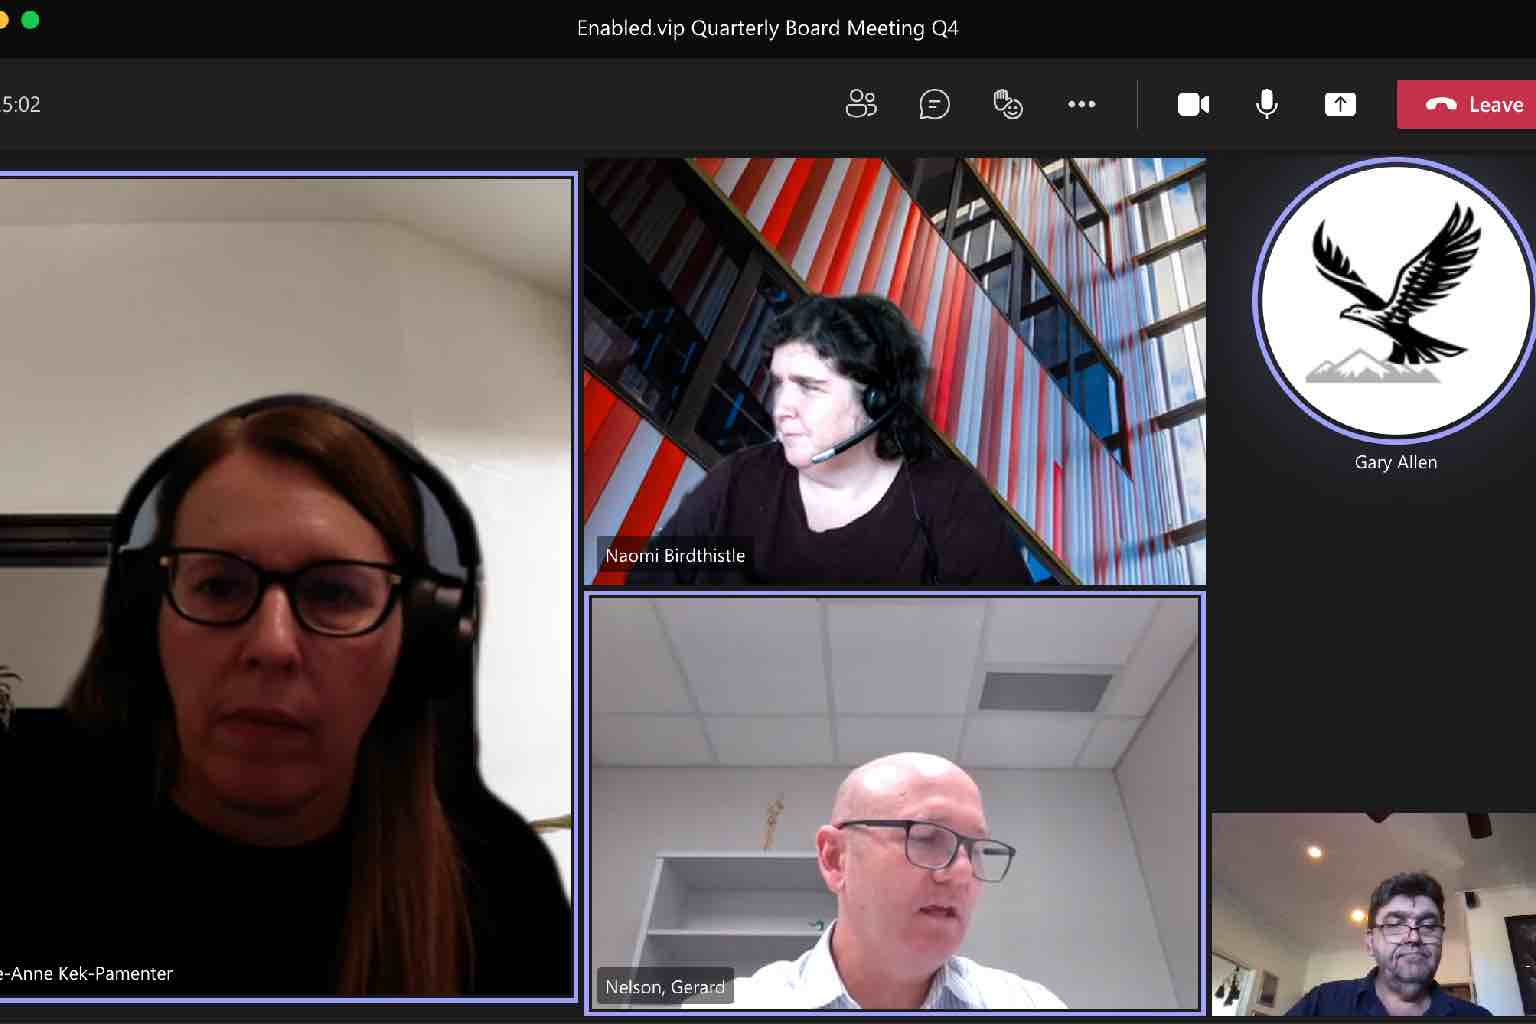 Screenshot of the Enabled.vip Board meeting on 210604